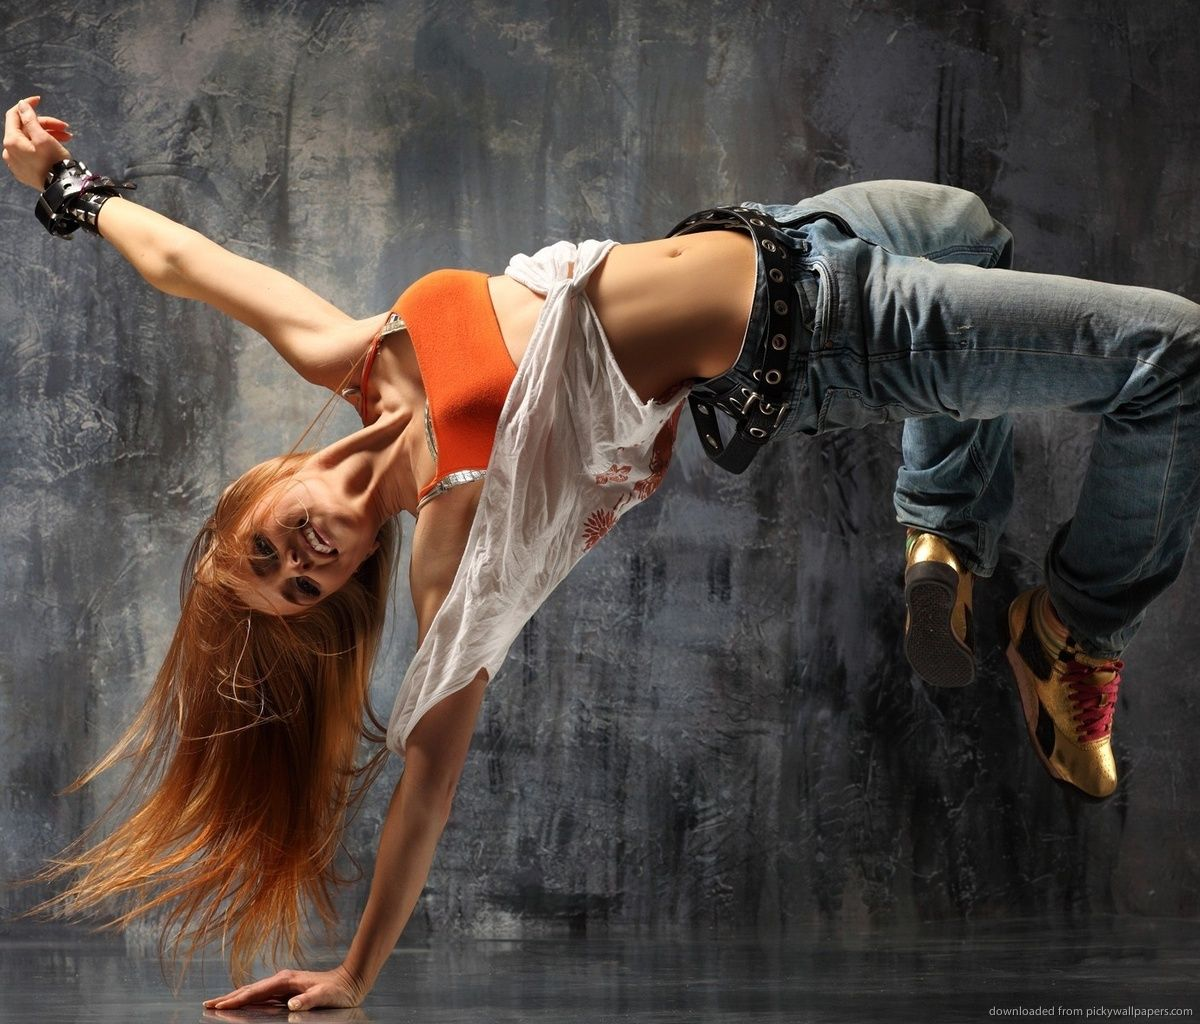 Download Hip Hop Dance Wallpaper For Samsung Galaxy Tab in